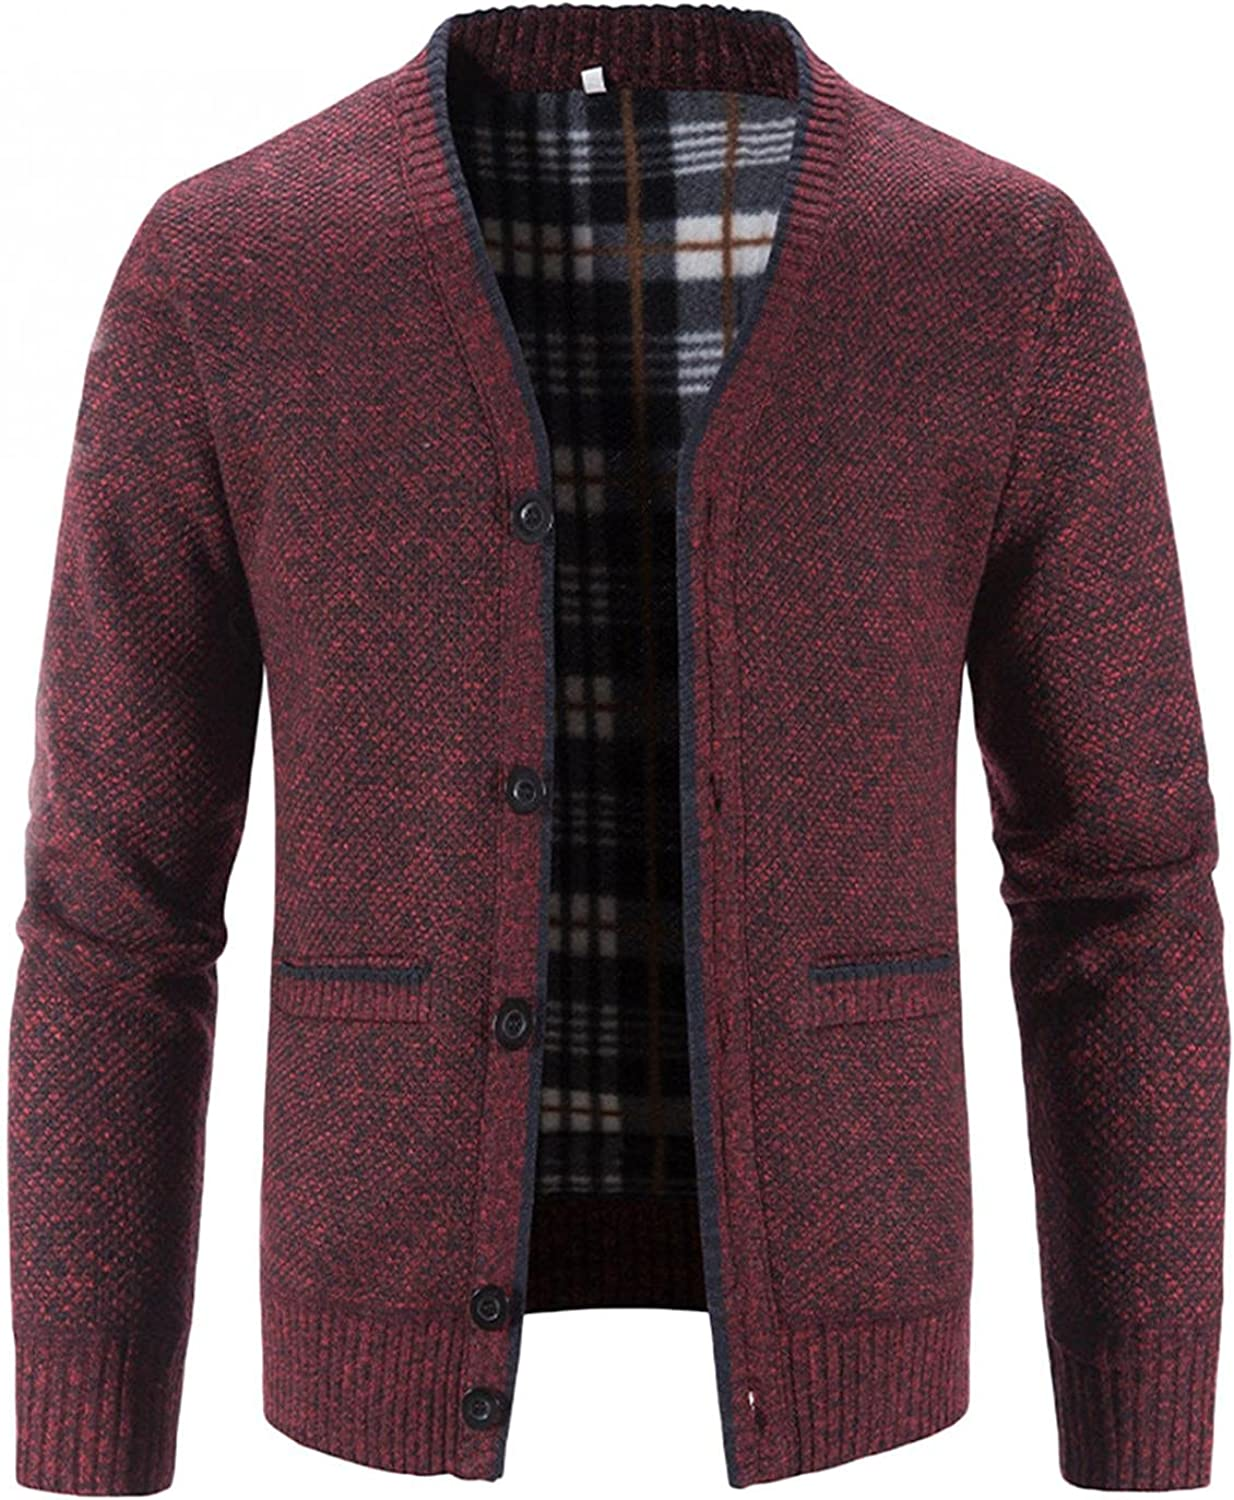 Wisgofre Men's Full Zip Cardigan Sweater Regular Fit Flannel Cardigan with Pockets Casual Winter Long Sleeve Outwear